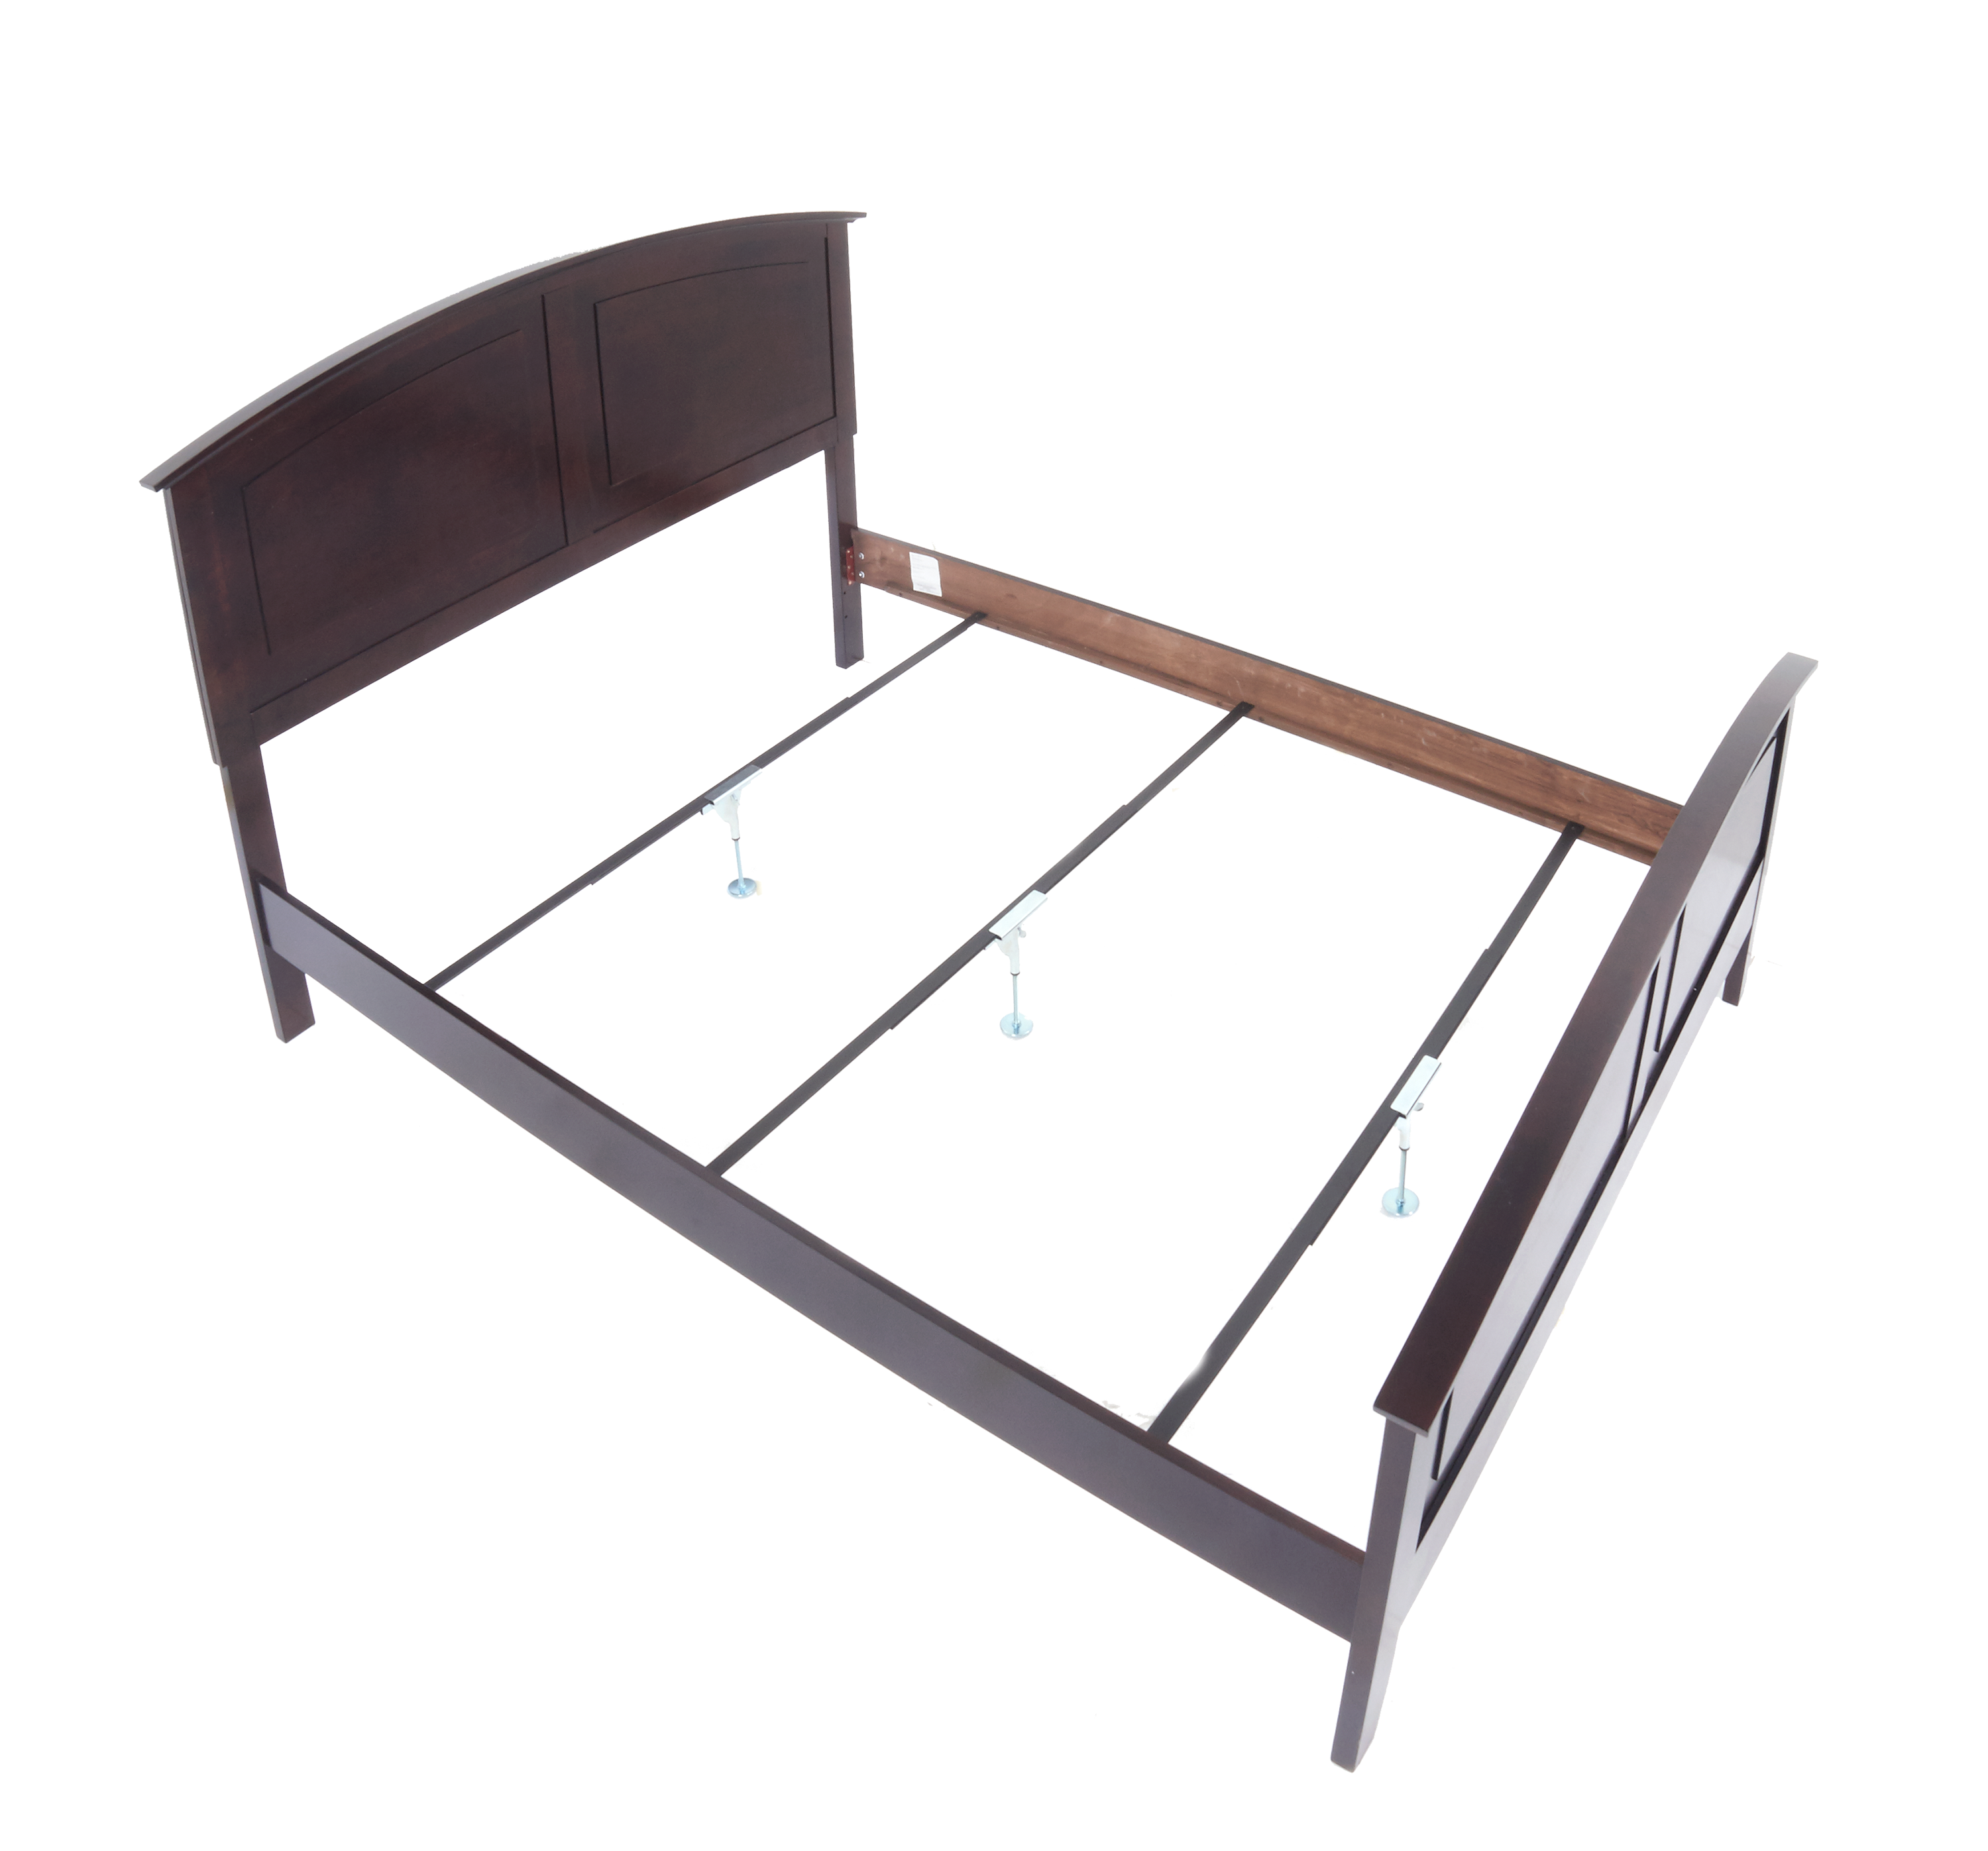 It S Easy To Replace Flimsy Or Broken Bed Slats With Our Support